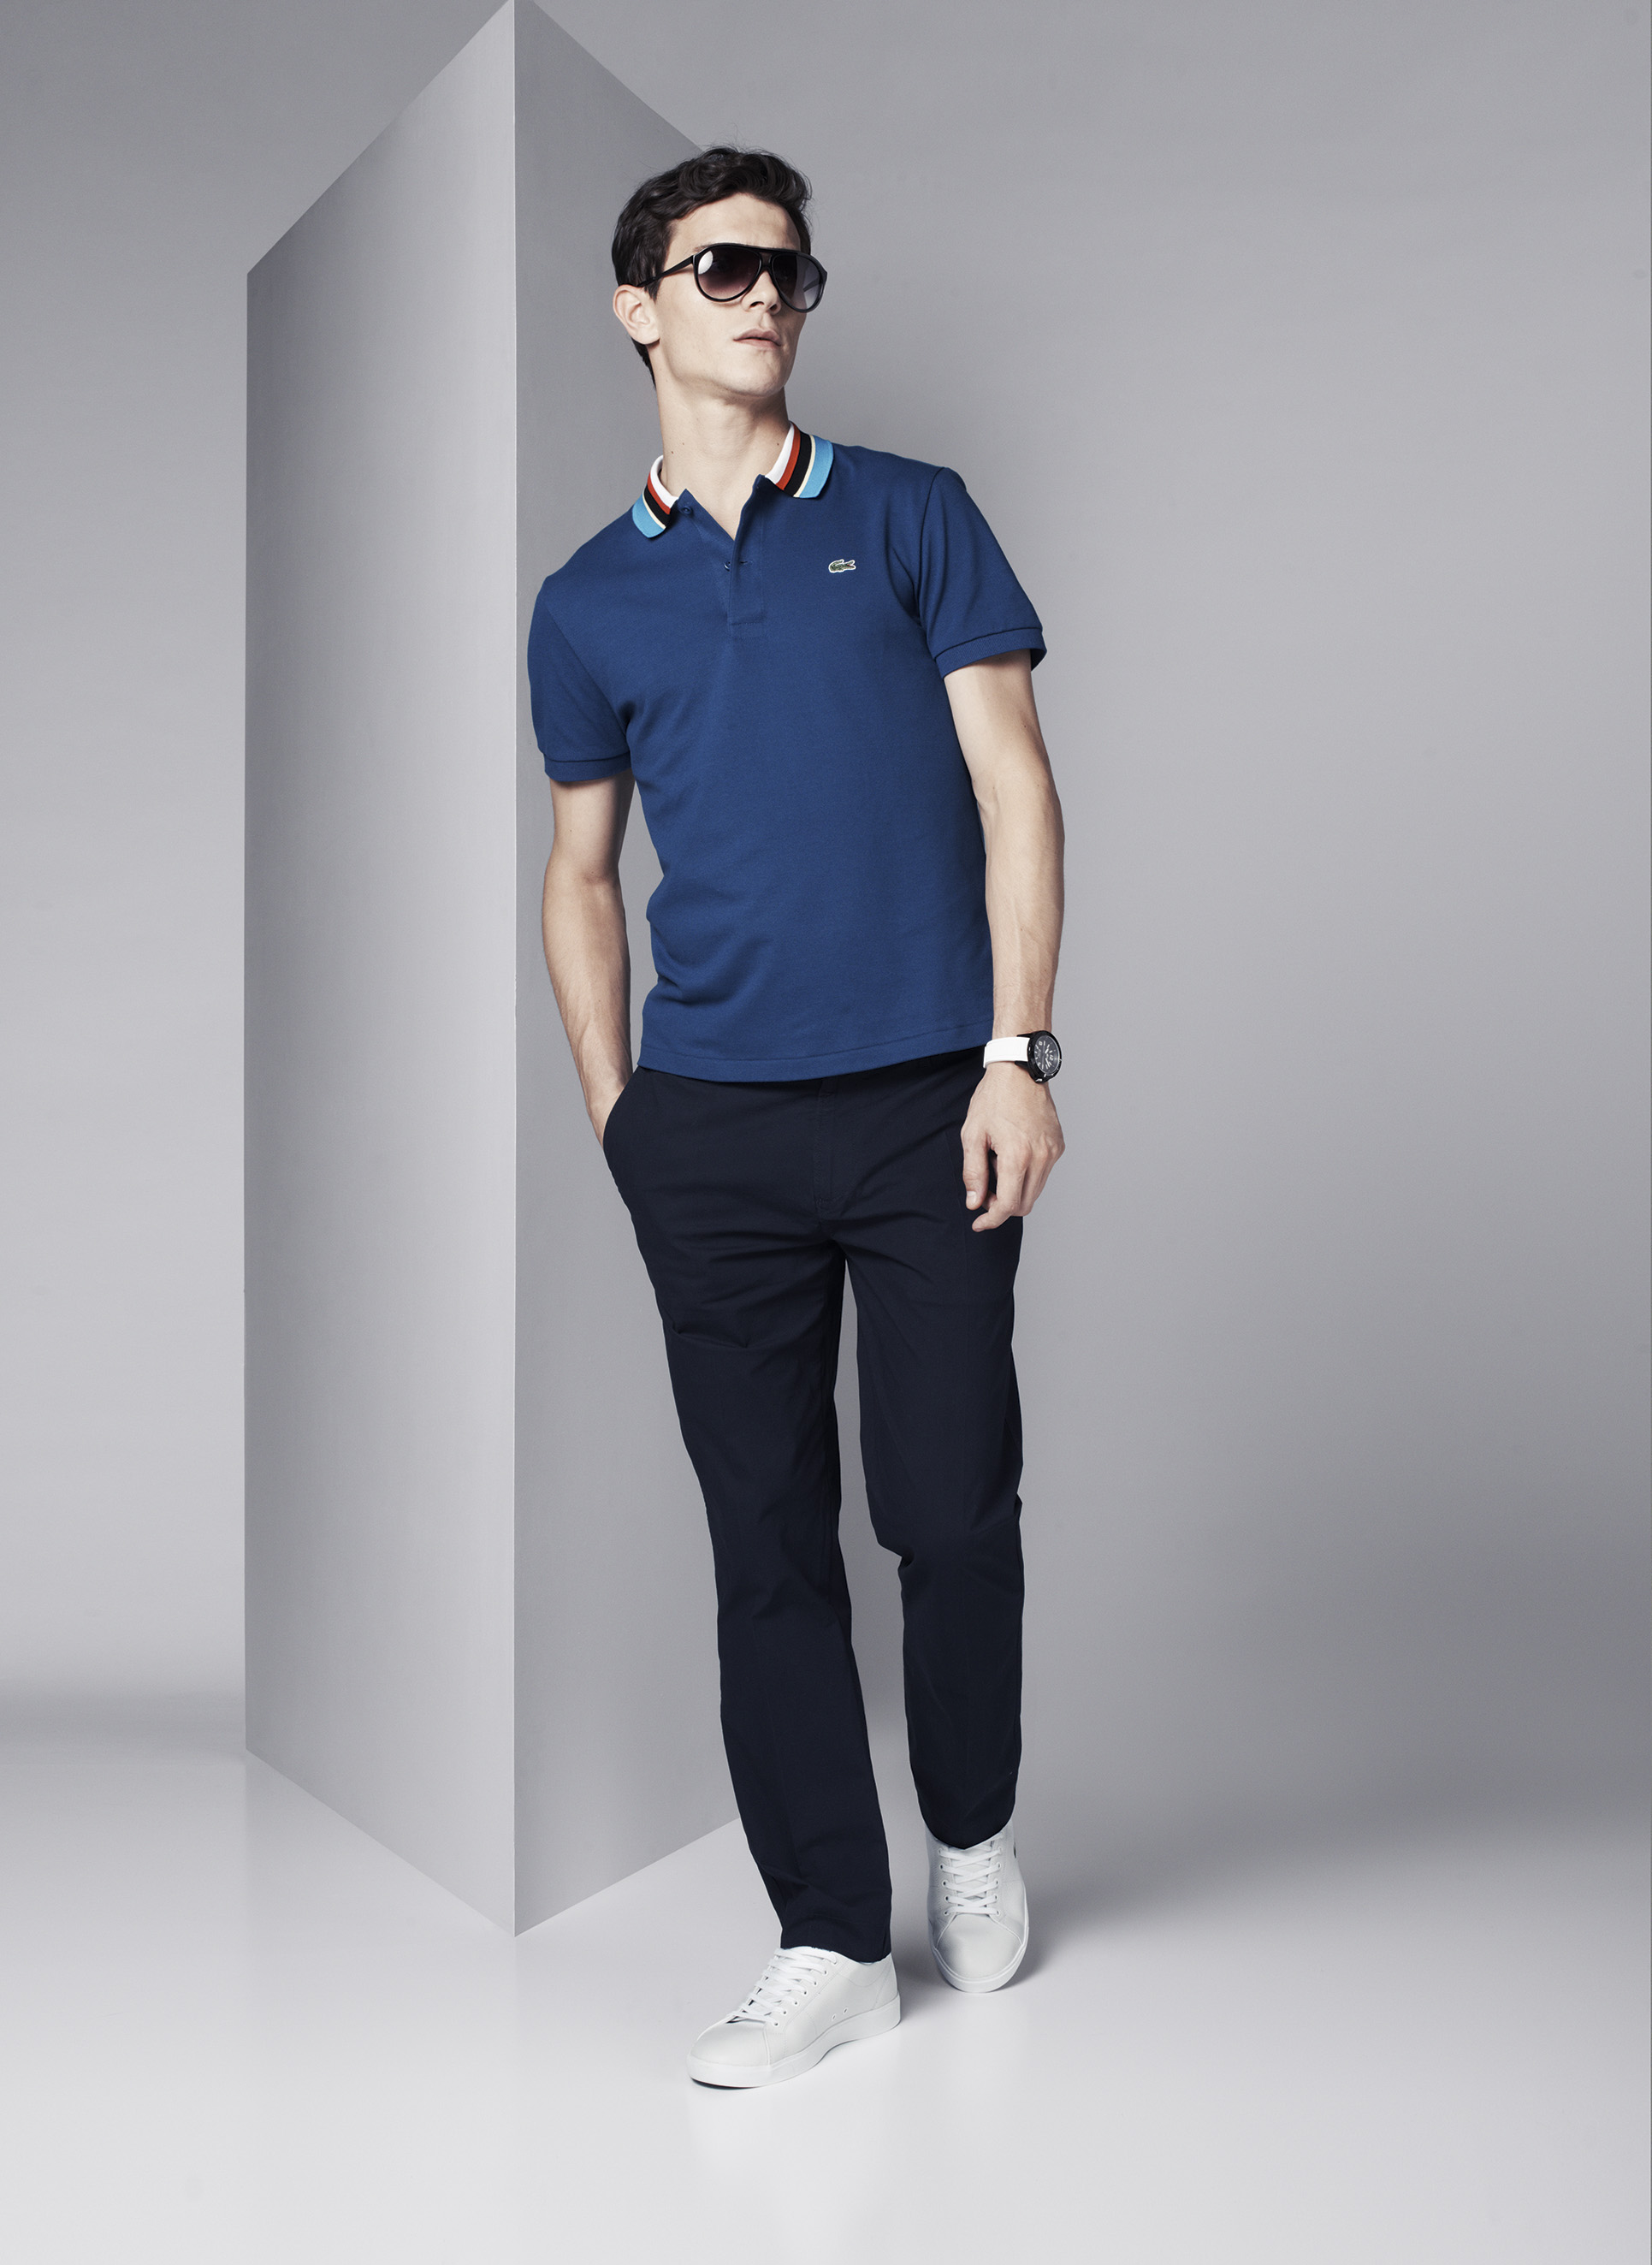 lacoste menswear age mens clothing designer ss14 history mainline mainlinemenswear